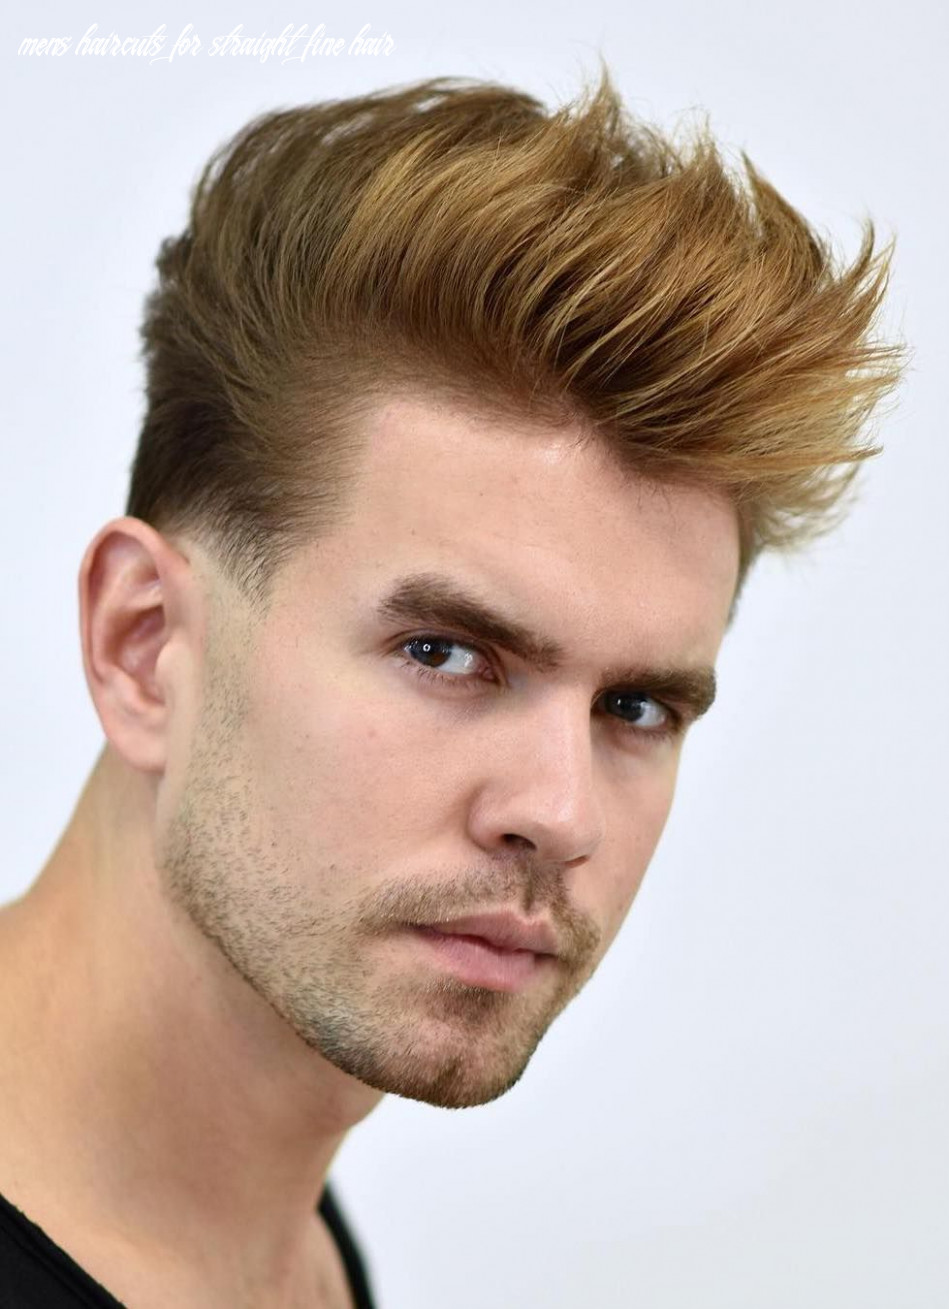 9 Hairstyles for Men With Thin Hair (Add More Volume) (With ...